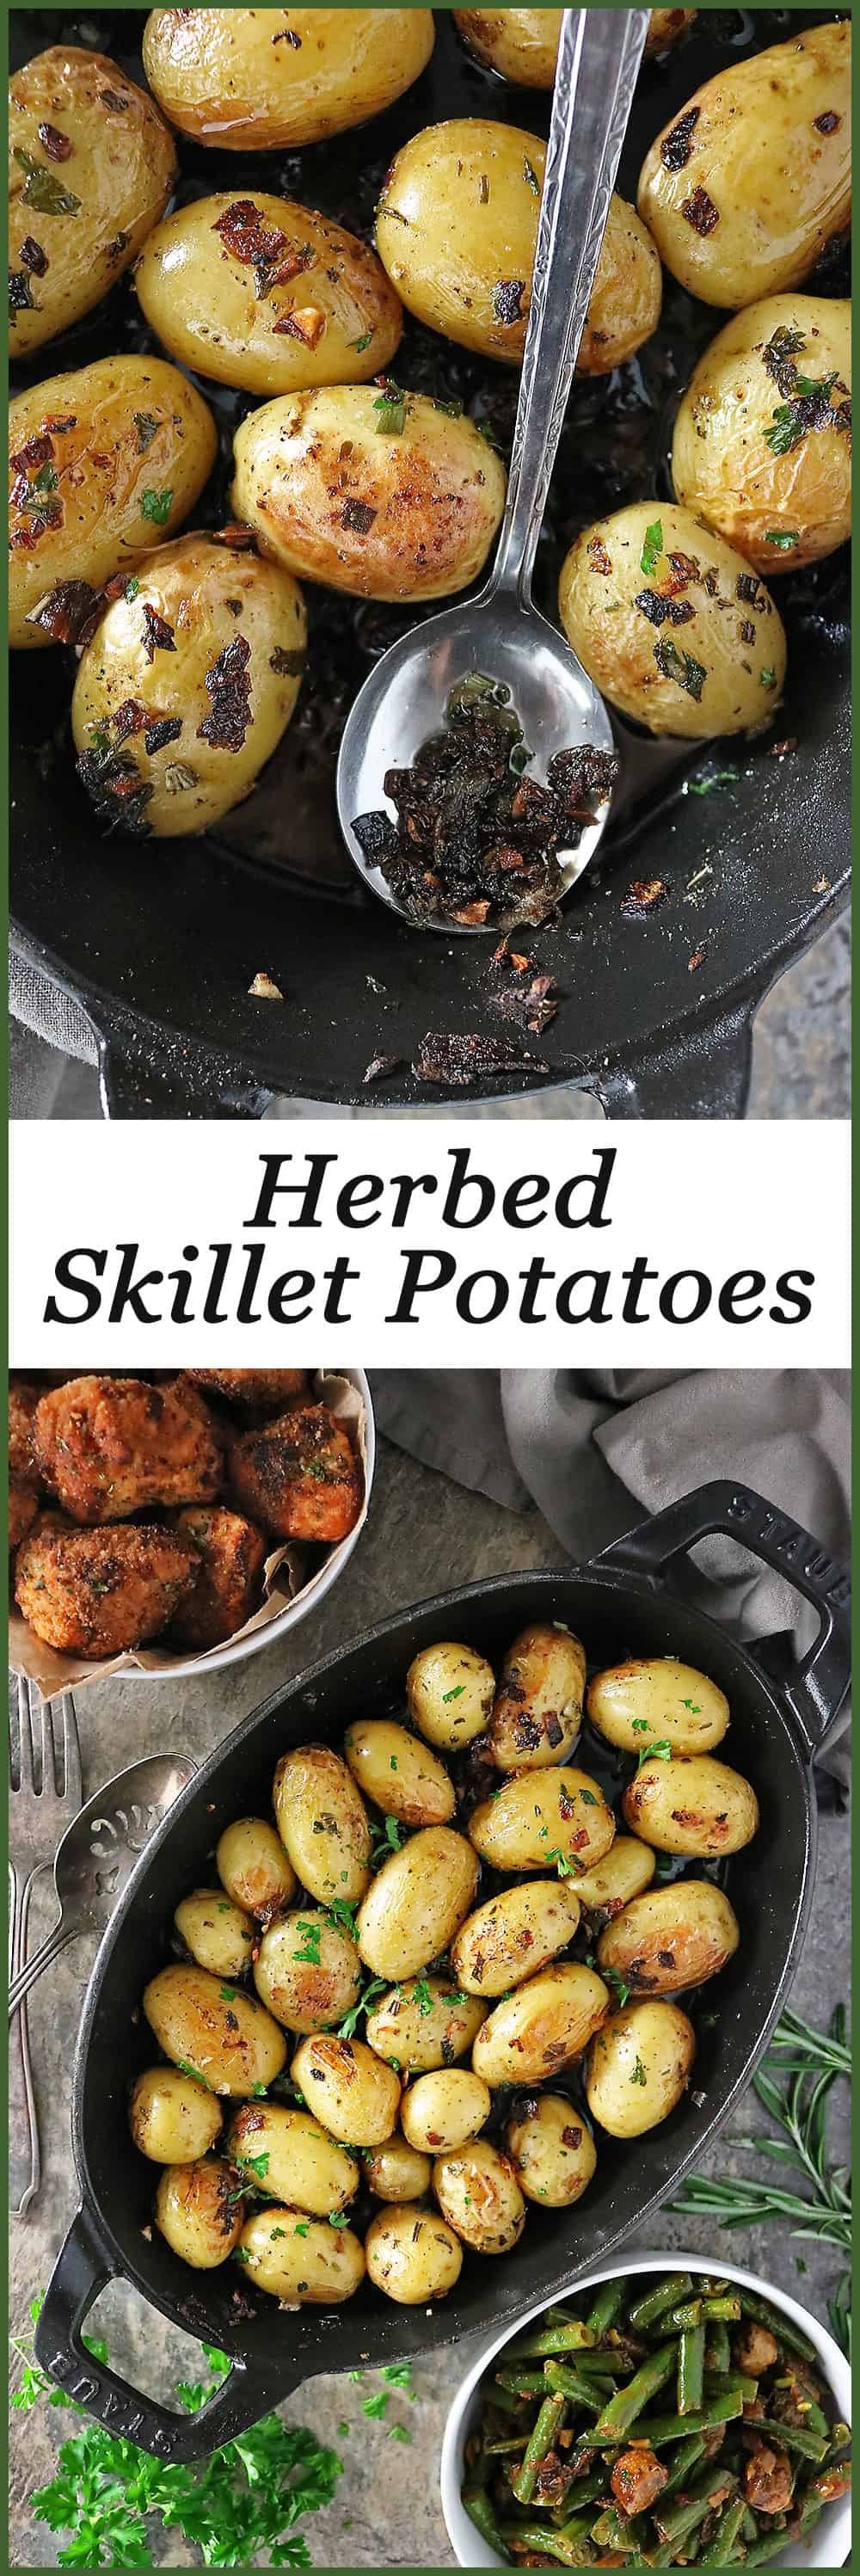 These Cast-iron Garlic Herb Potatoes are soft in the middle with a slightly crisp skin. Aromatic and flavorful , these make a delicious addition to your everyday and/or holiday dinner table.